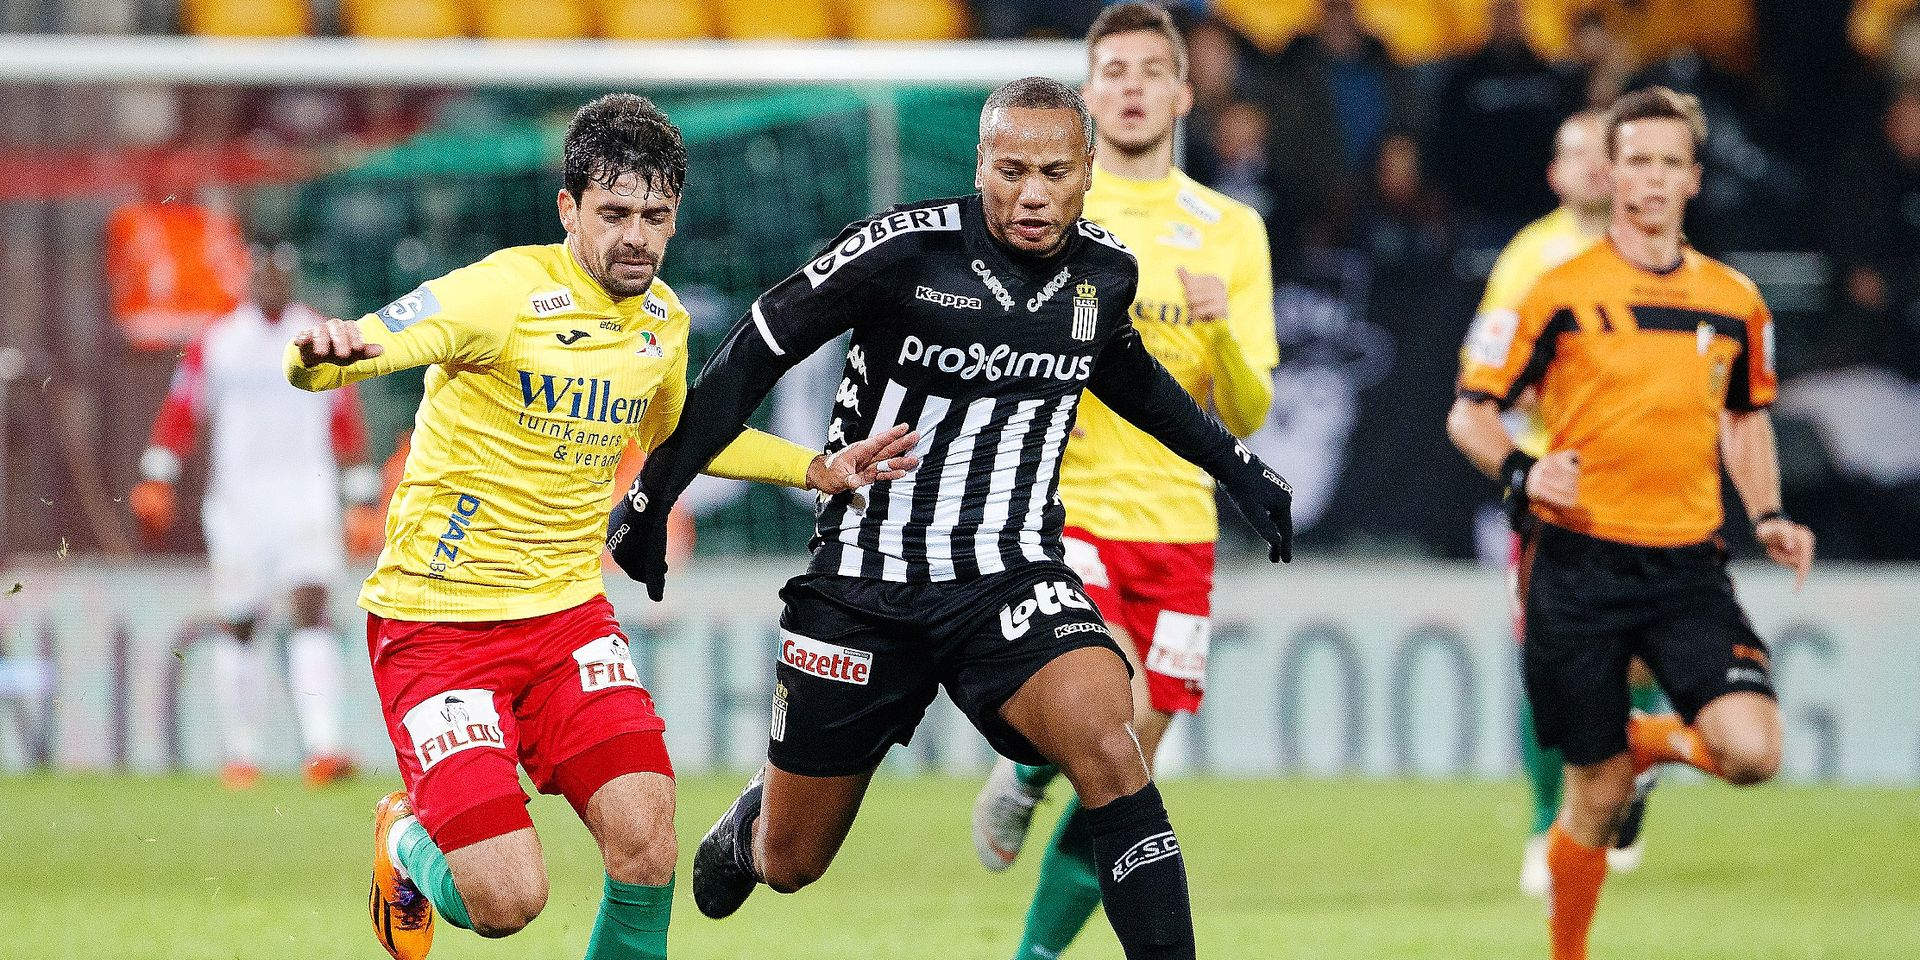 Charleroi's Marco Ilaimaharitra and Oostende's Fernando Canesin fight for the ball during a soccer game between KV Oostende and Sporting Charleroi, Friday 02 November 2018 in Oostende, on the fourteenth day of the 'Jupiler Pro League' Belgian soccer championship season 2018-2019. BELGA PHOTO KURT DESPLENTER